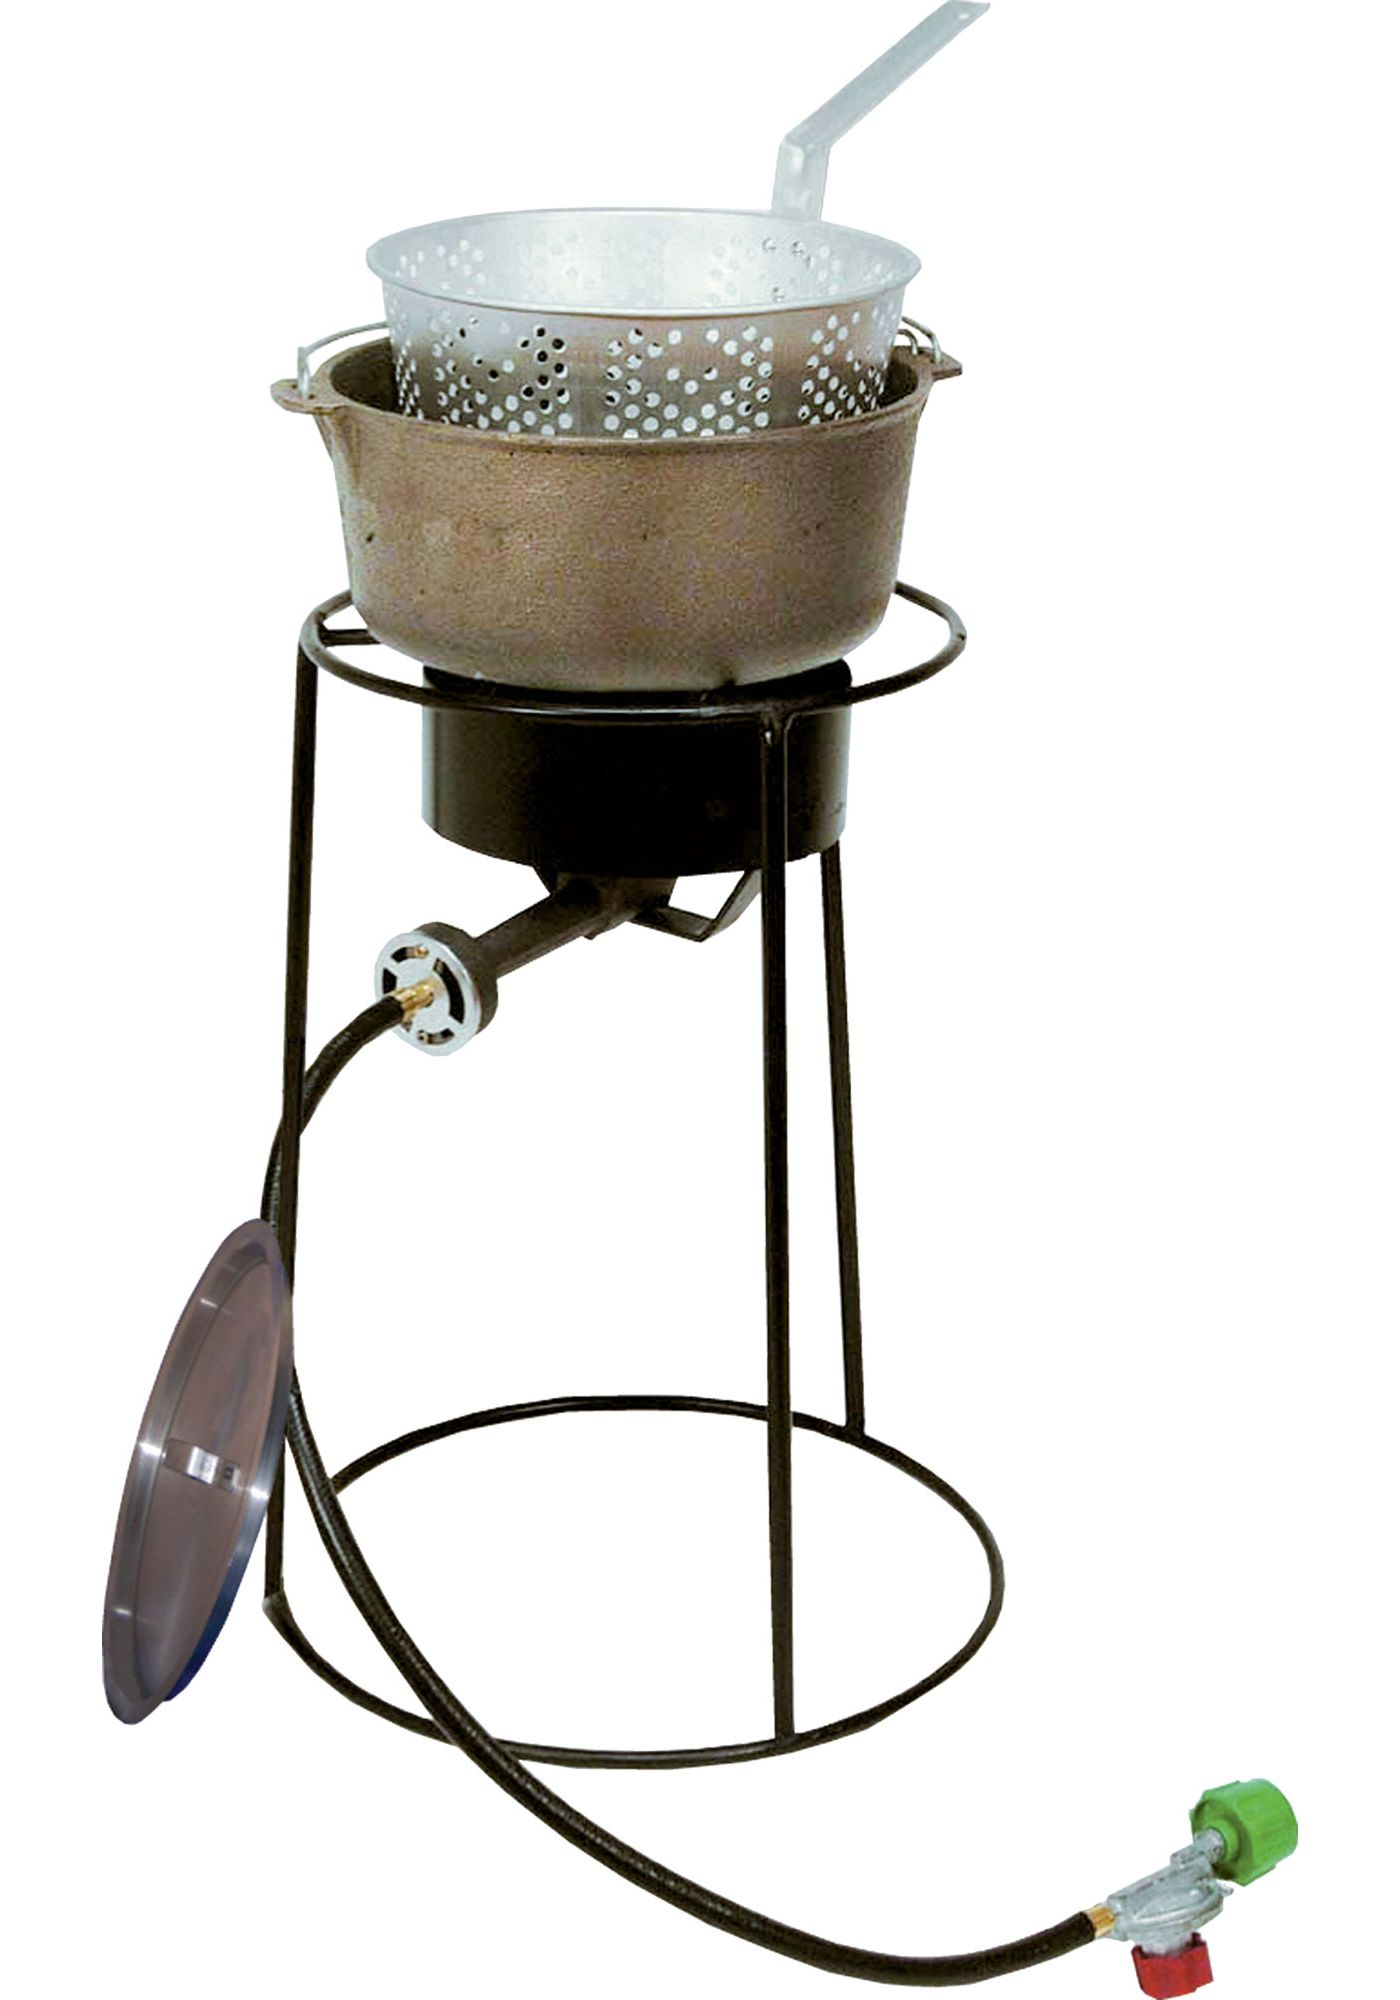 "King Kooker 20"" Fish Fryer Package with 6 Quart Cast Iron Pot"